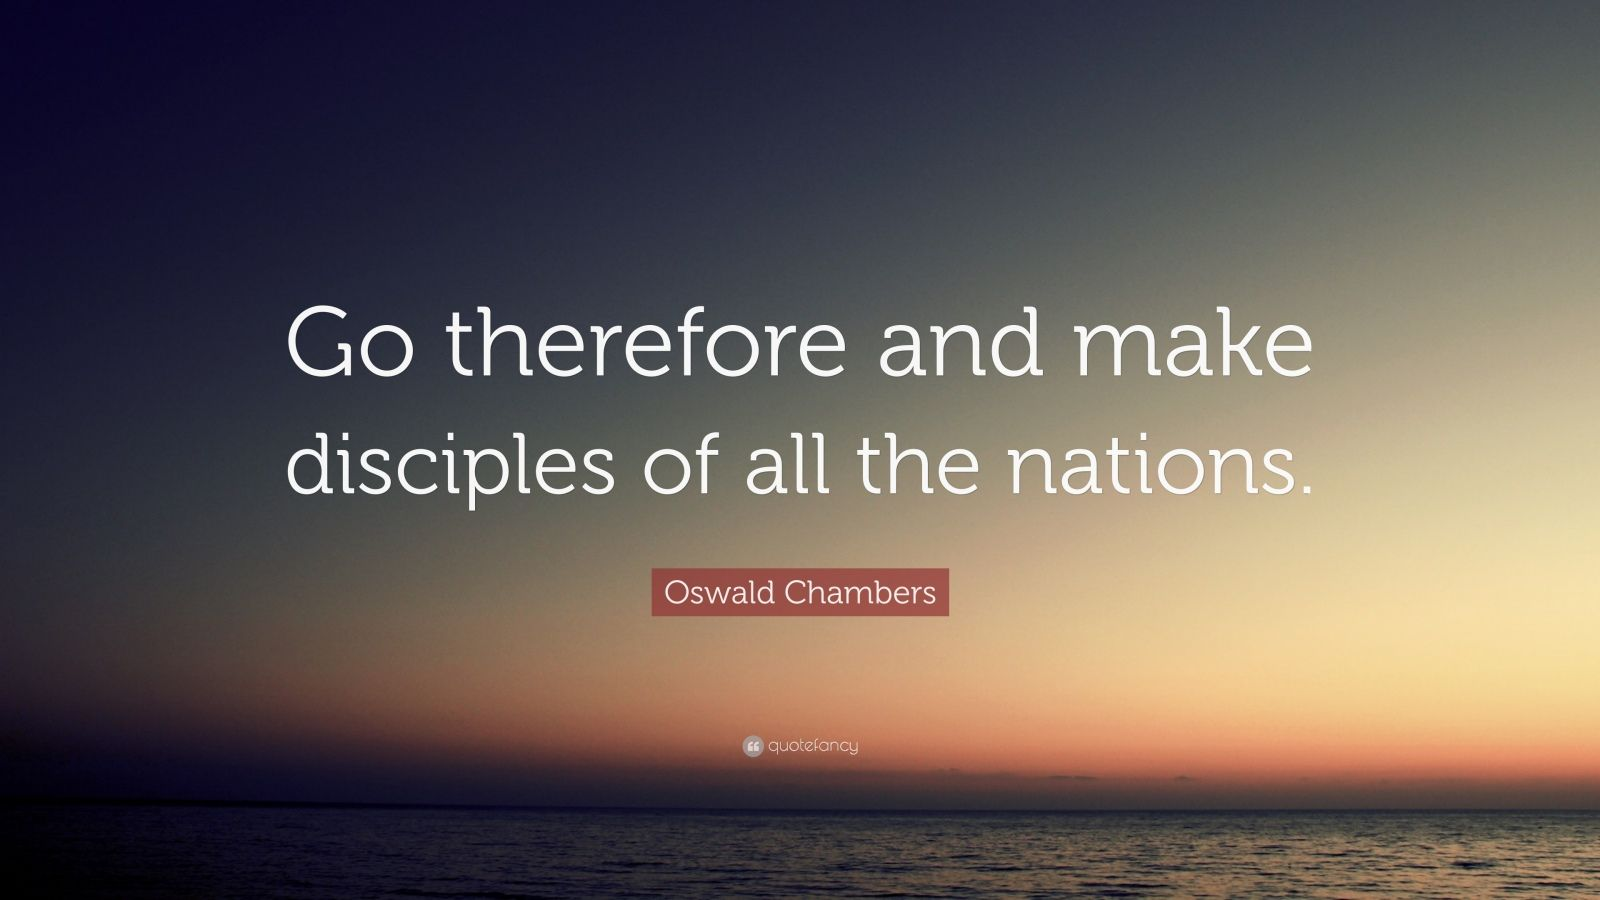 Nick Vujicic Quotes Wallpaper Oswald Chambers Quote Go Therefore And Make Disciples Of